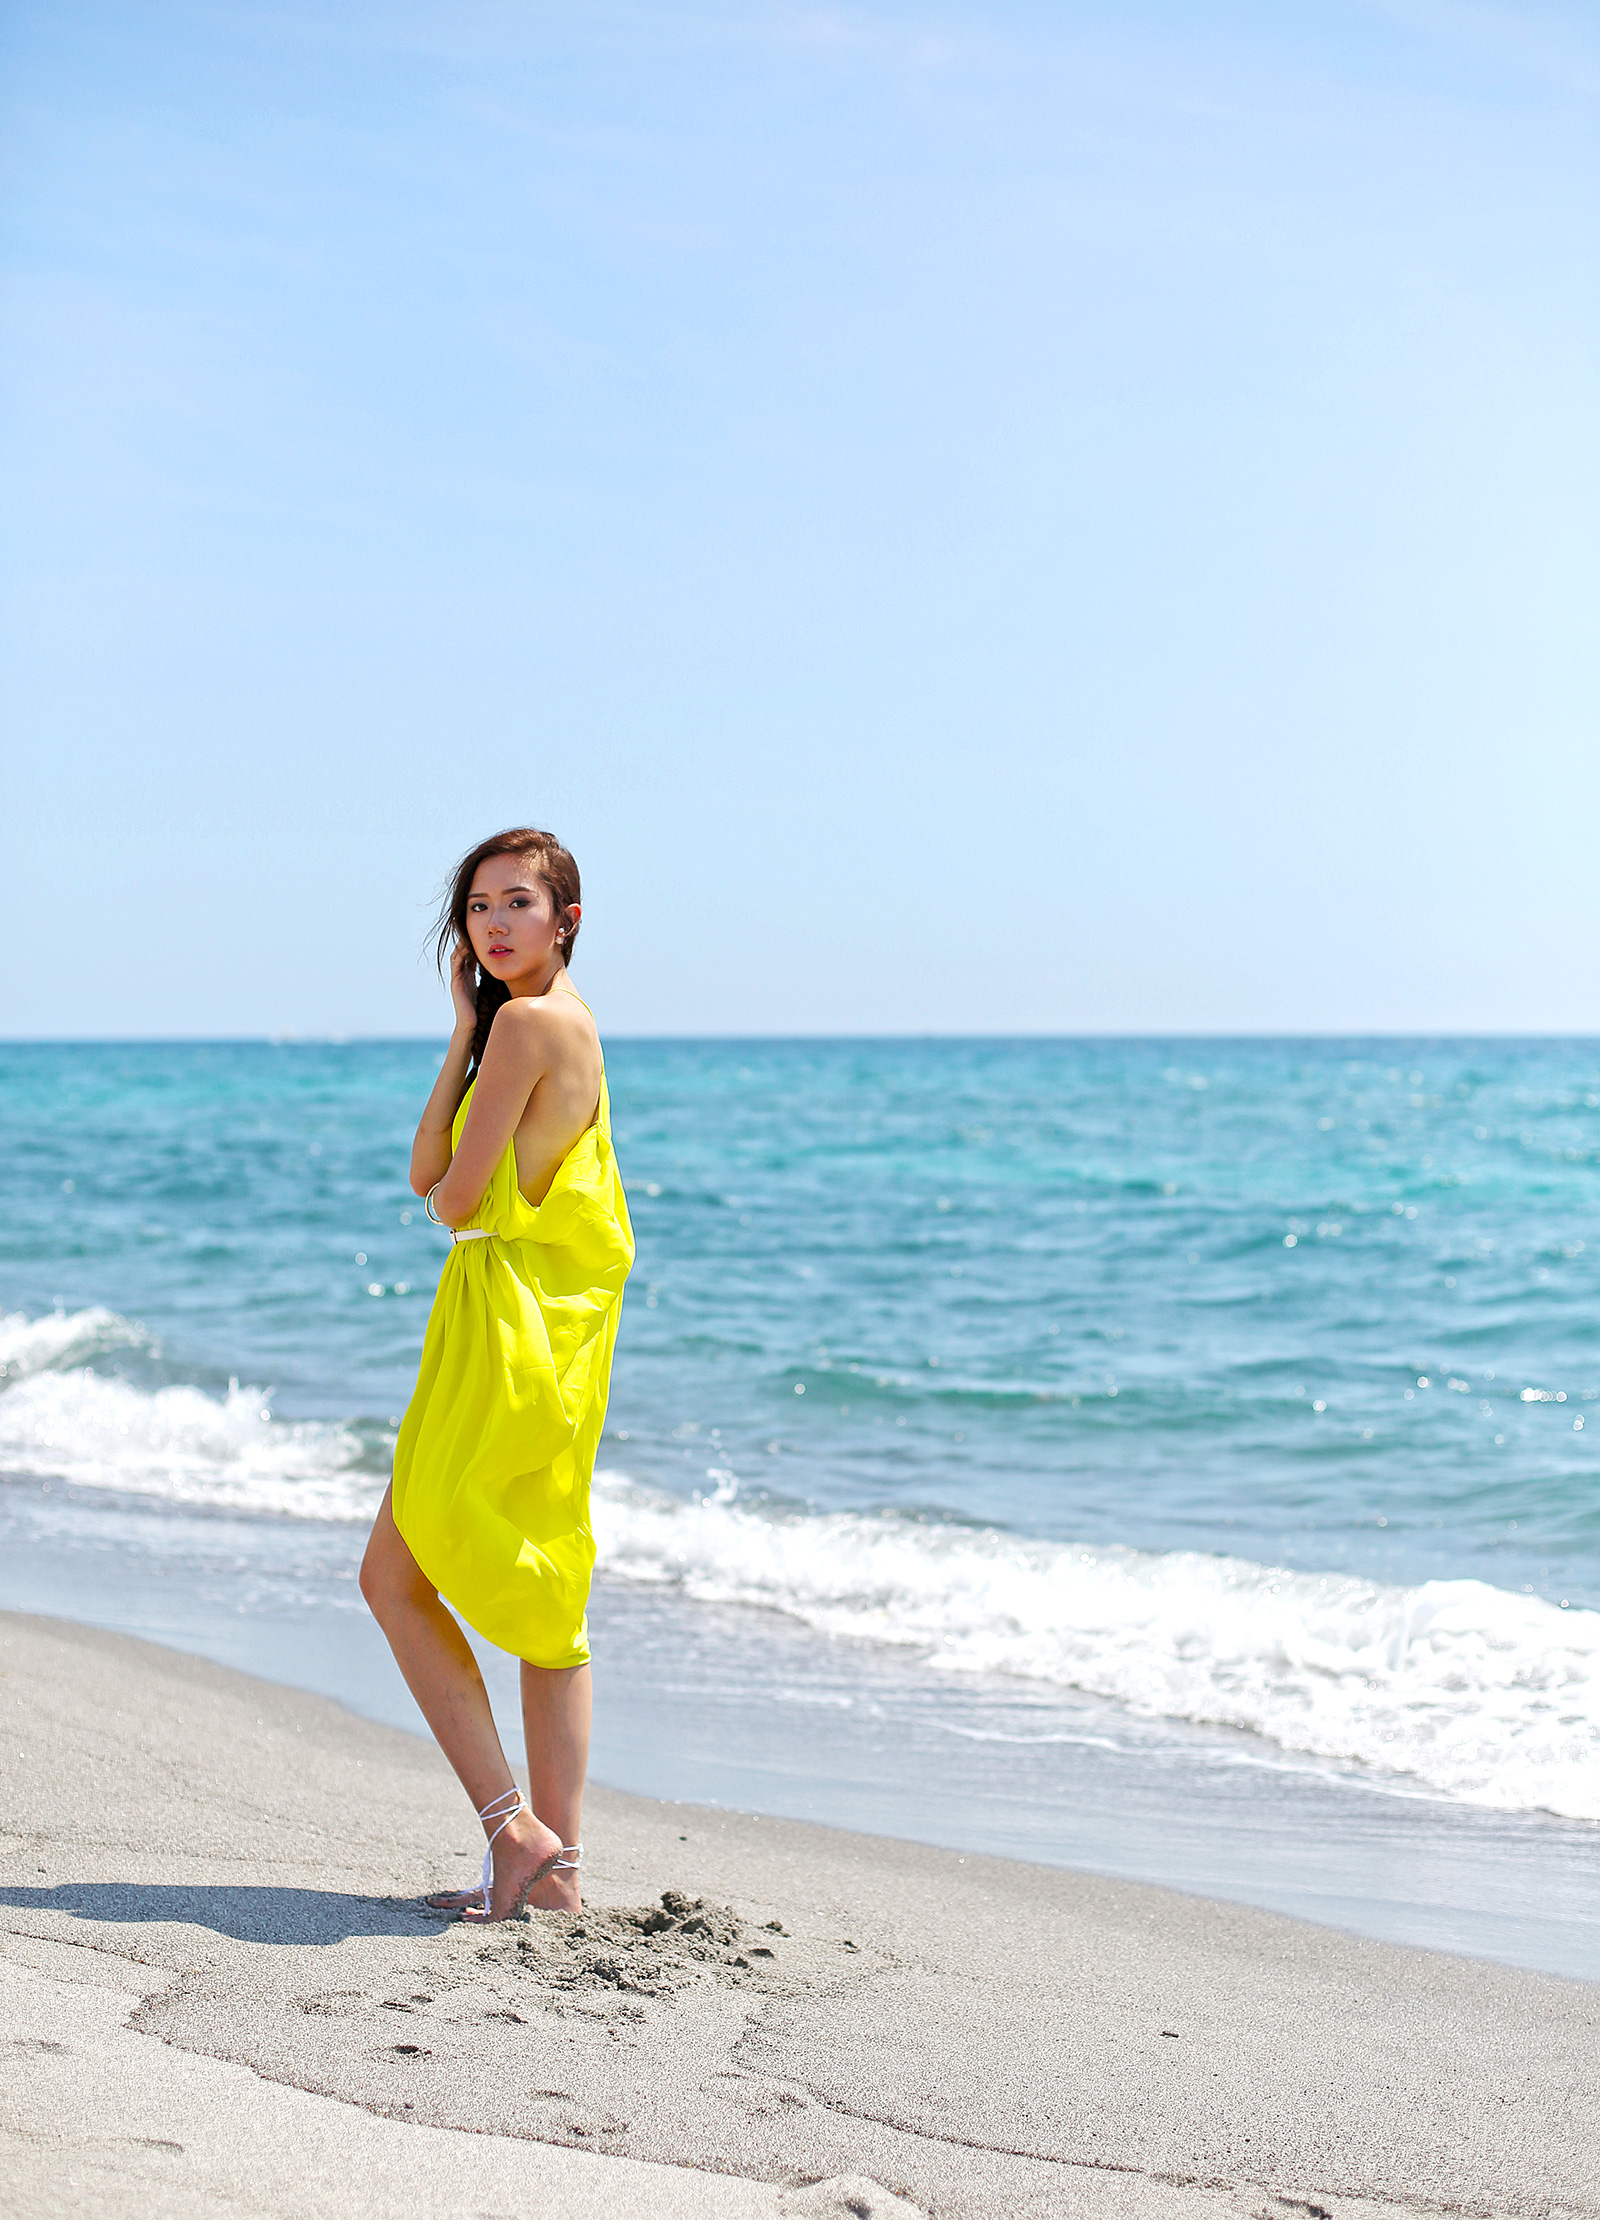 Dress Code Project Beach Cover Up | www.itscamilleco.com